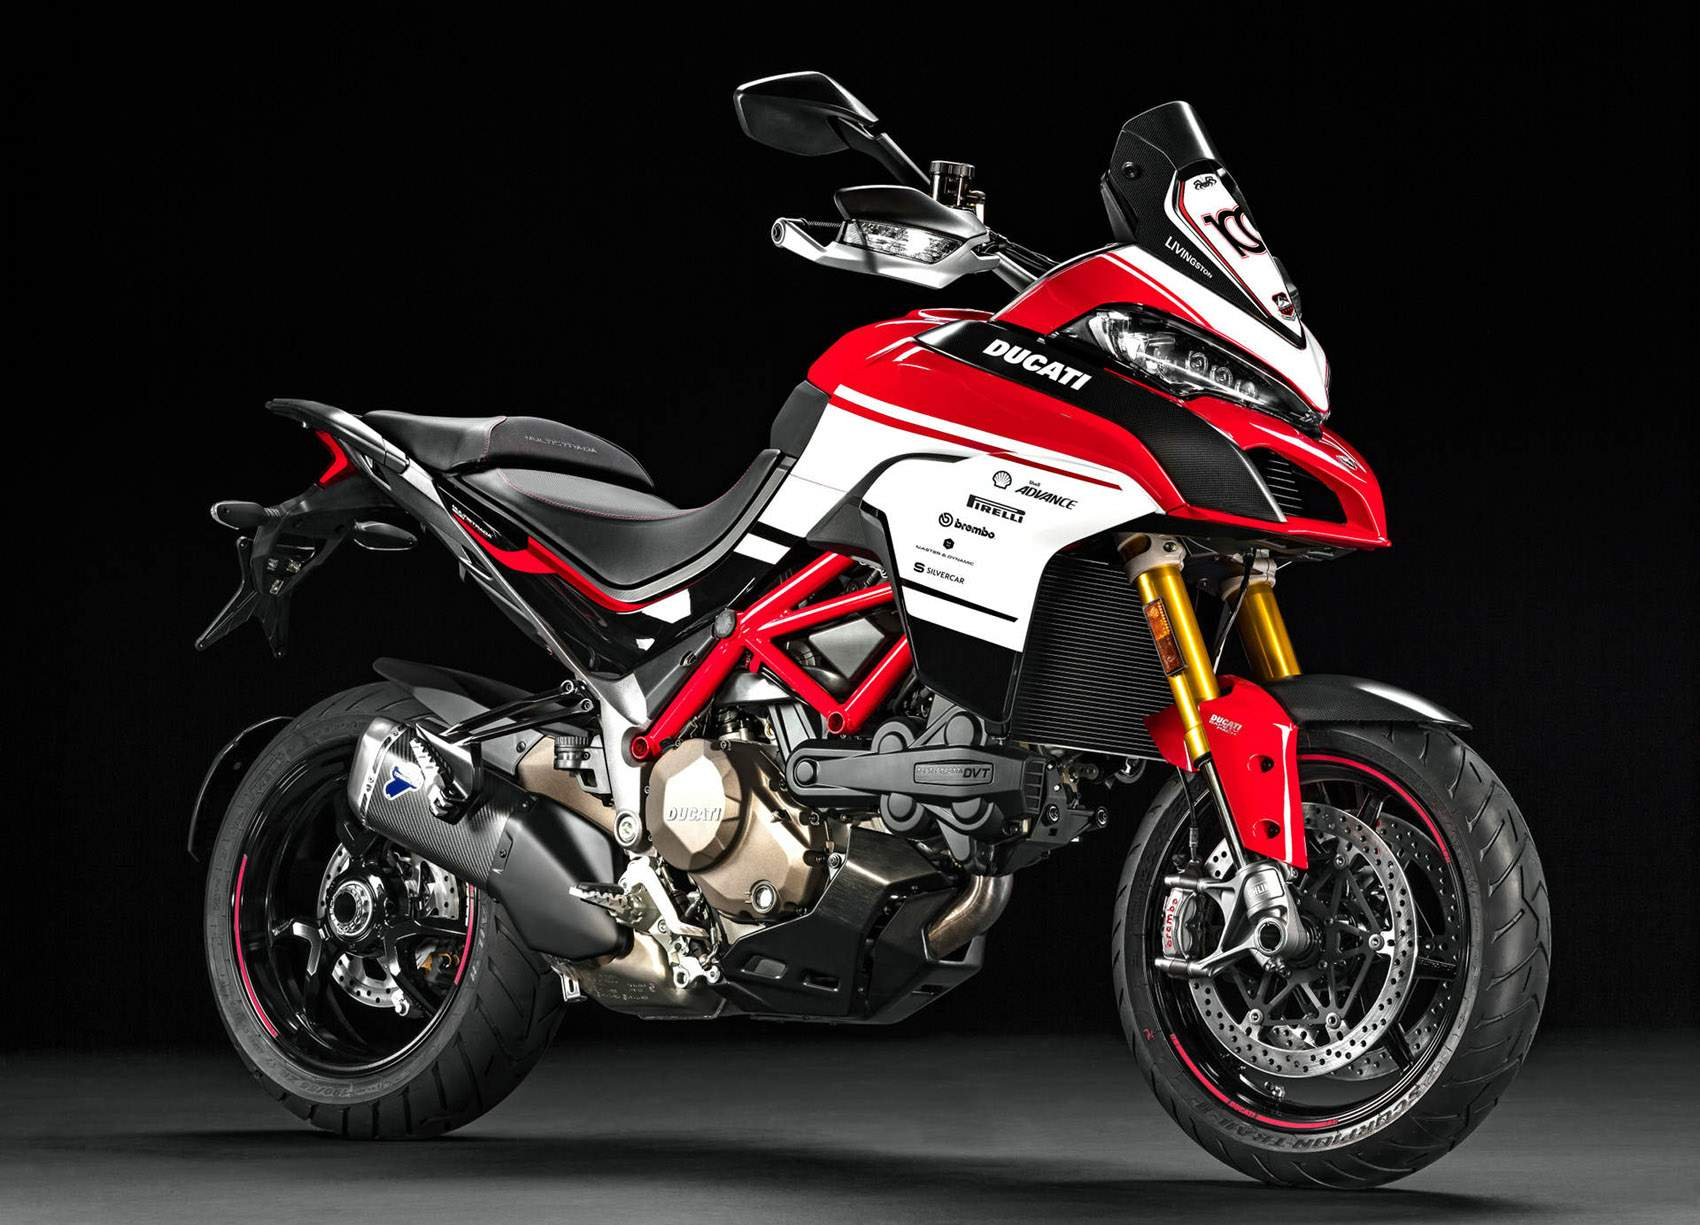 Мотоцикл Ducati Multistrada 1200 Pikes Peak 100th Anniversary Limited Edition Kit 2016